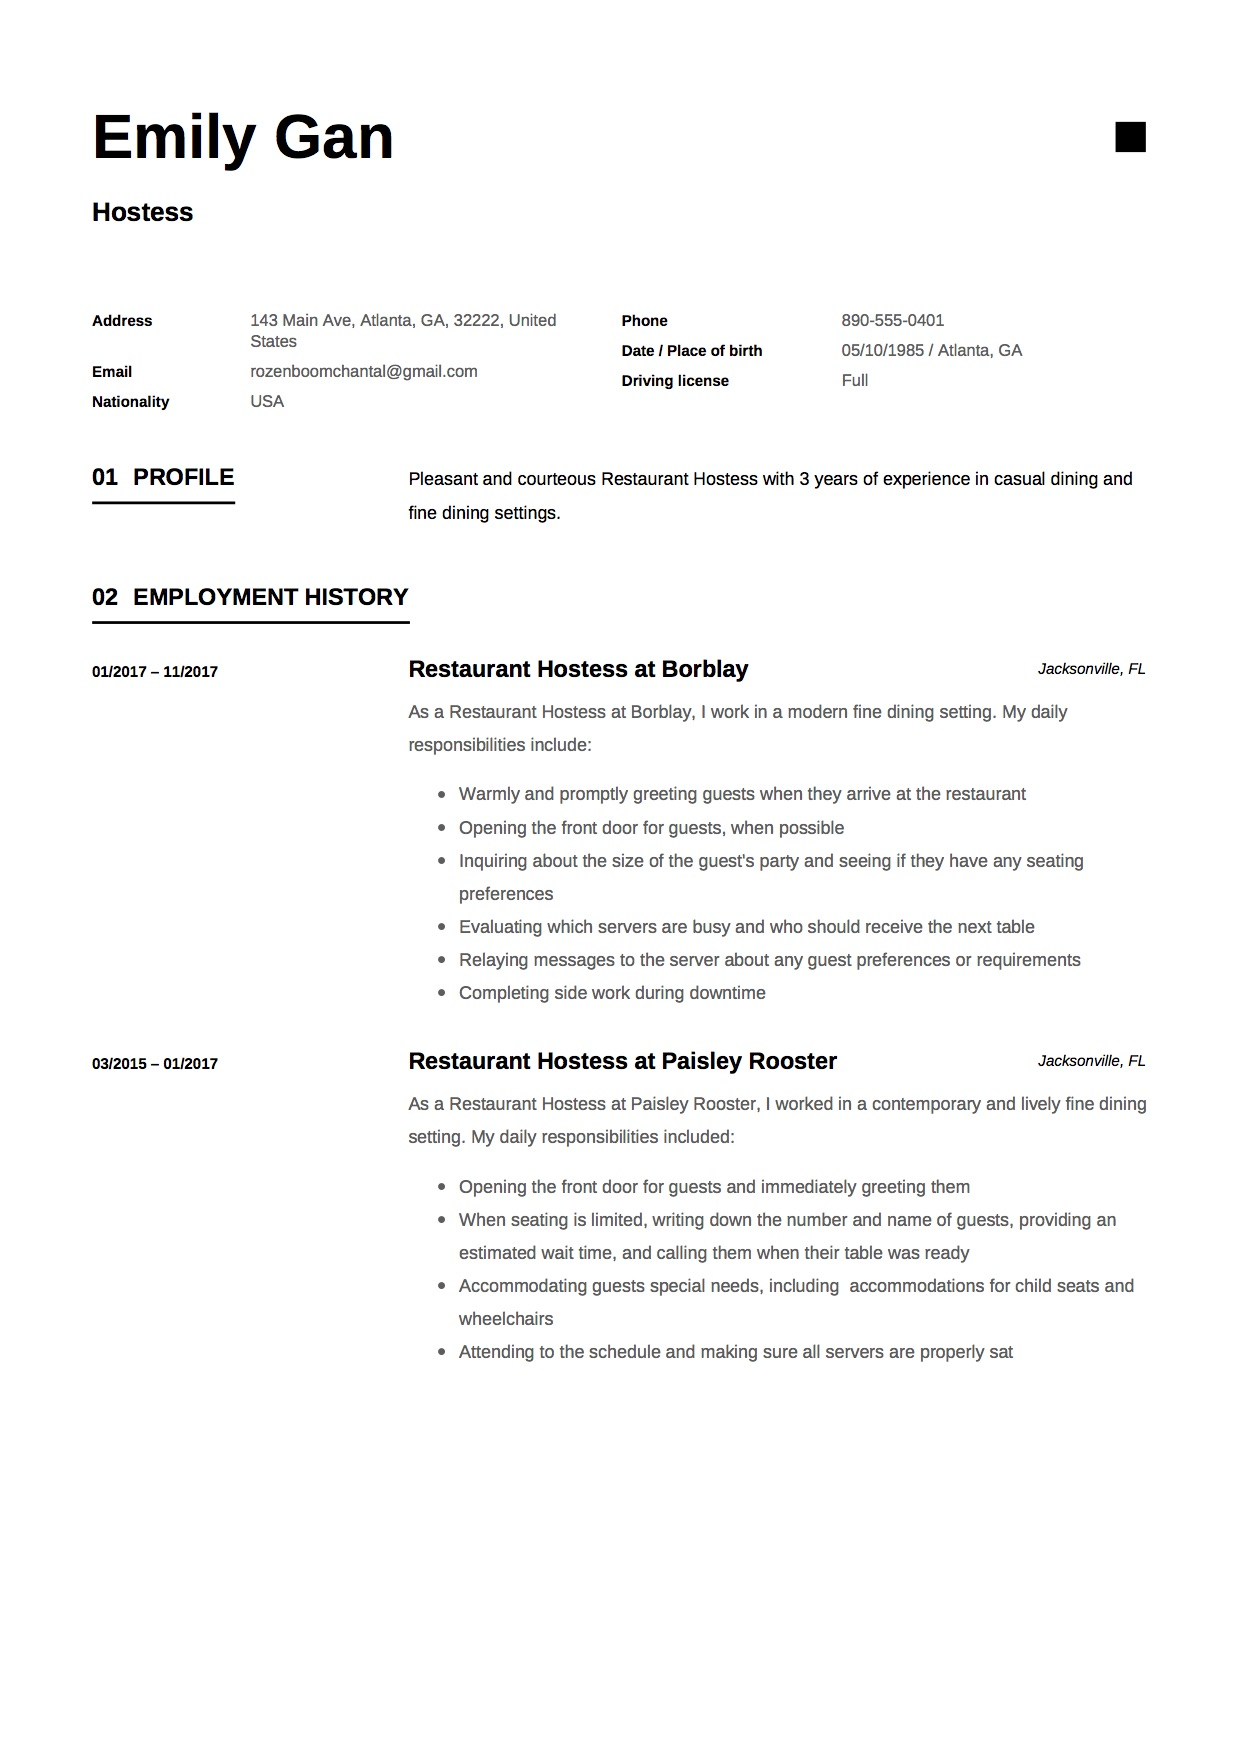 Resume For Hostess Job